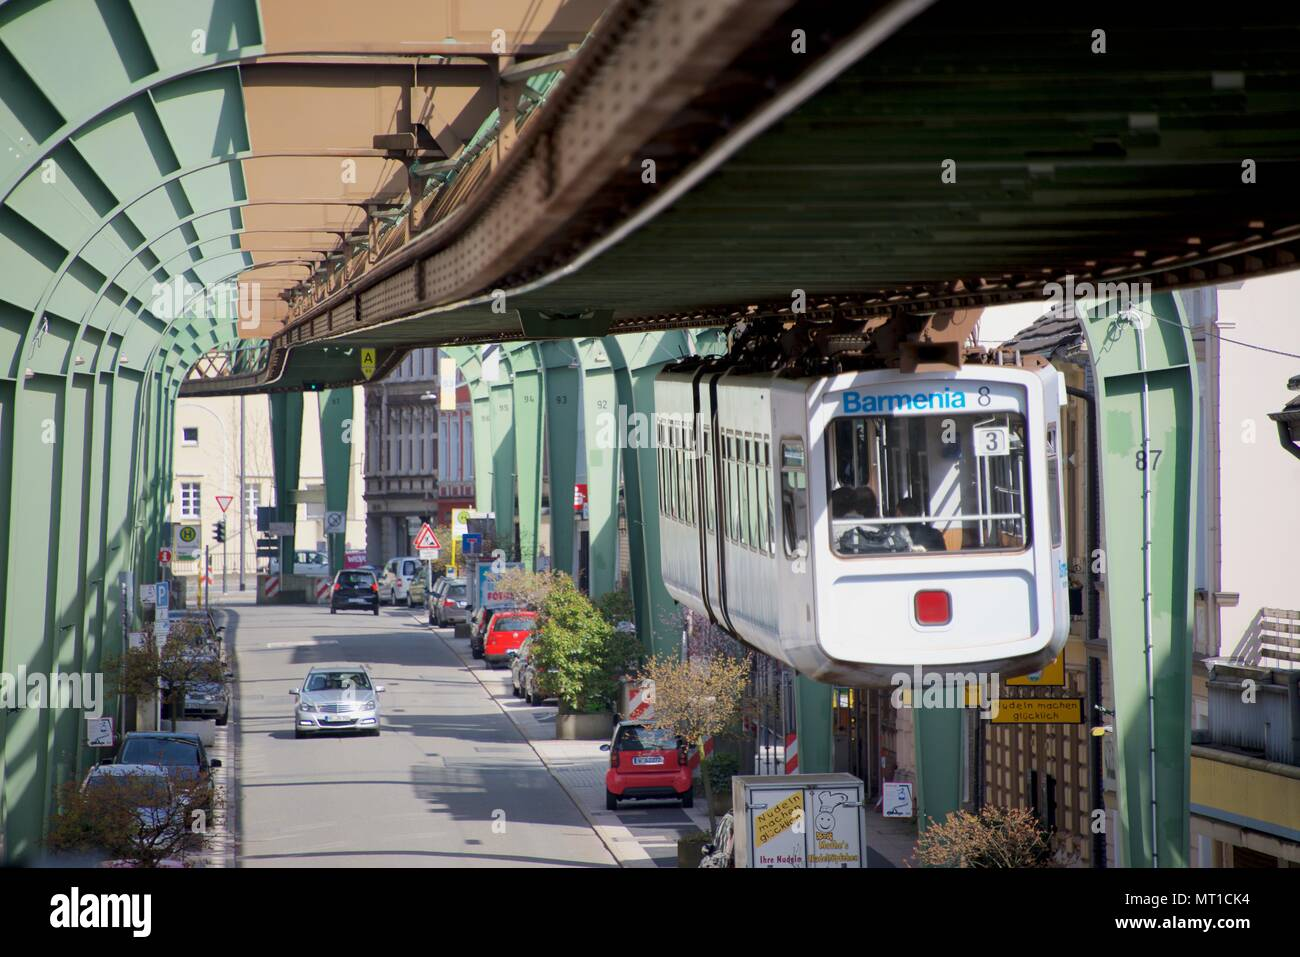 Schwebebahn car arrives at the station in Wuppertal, Germany Stock Photo